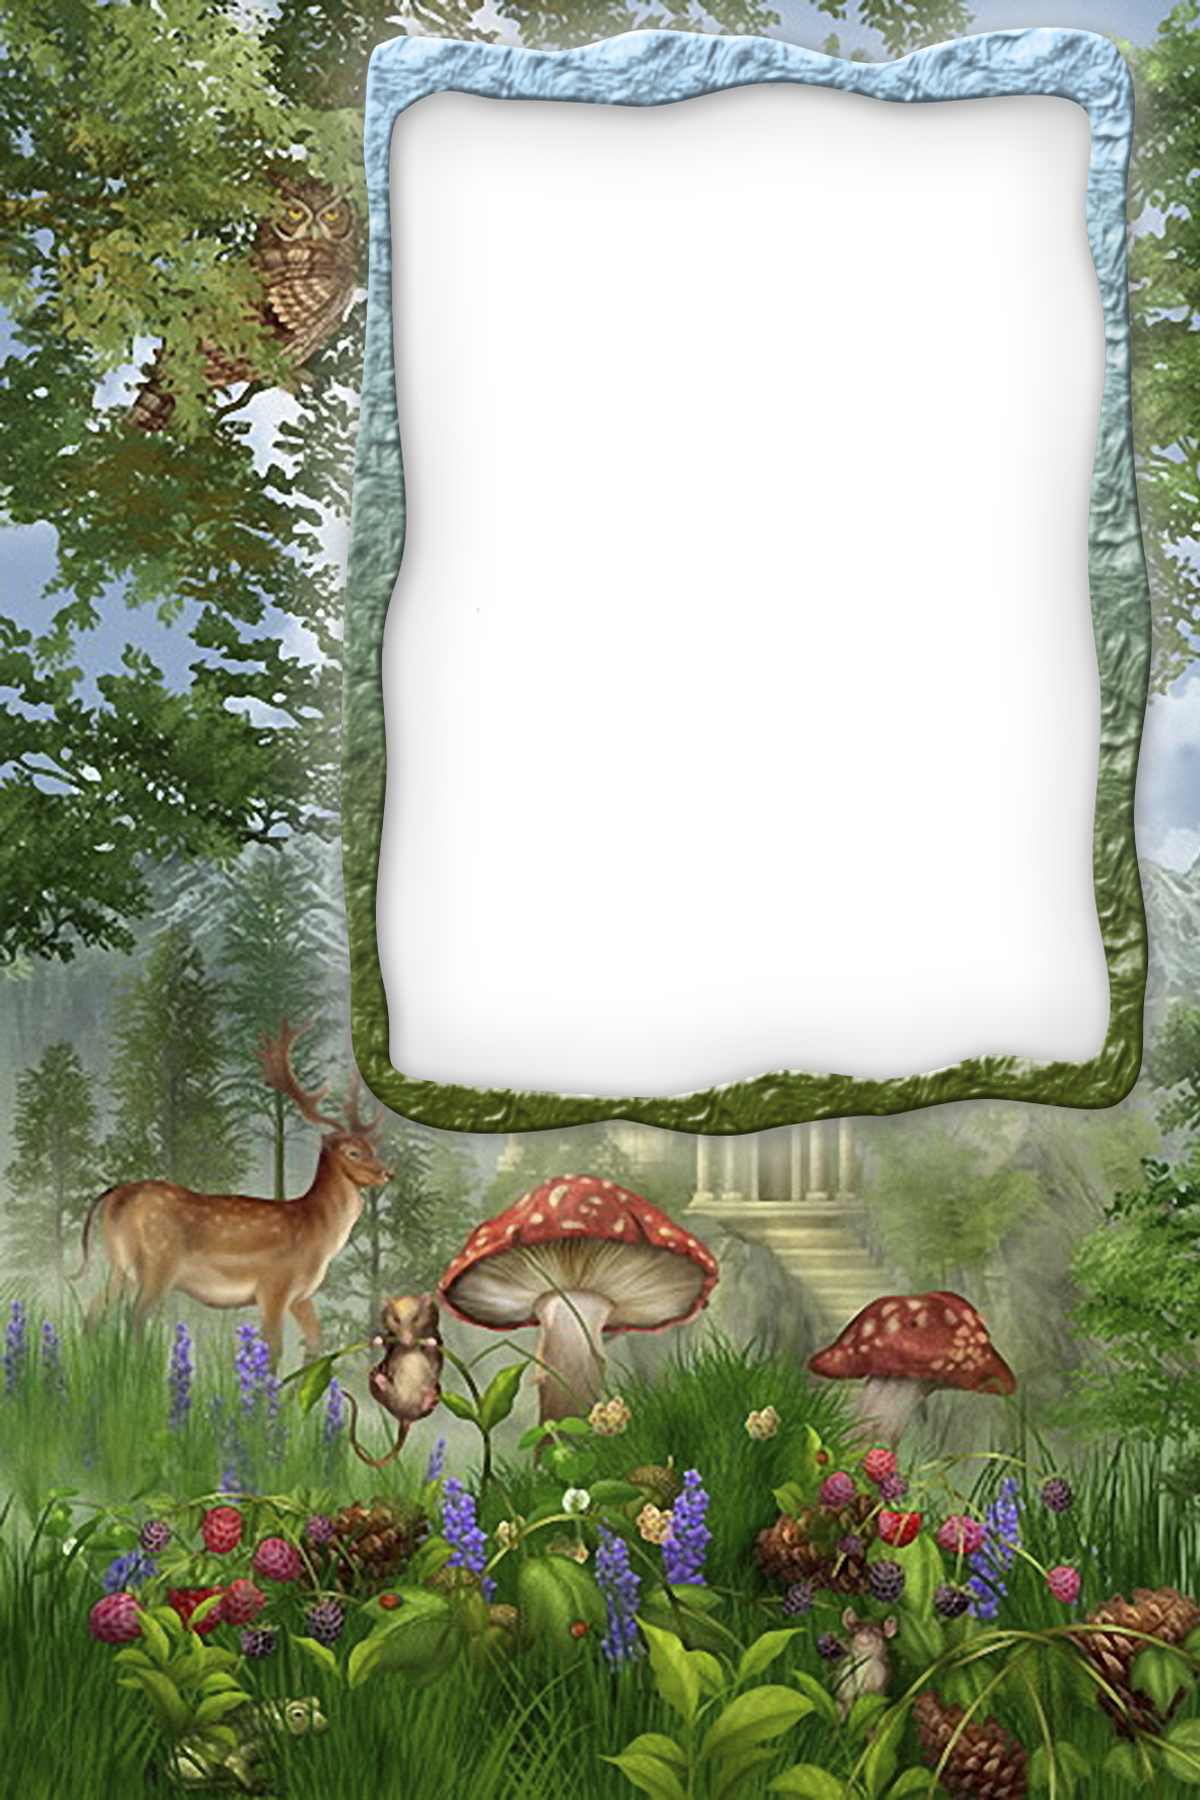 Clipart forest file. Transparent frame gallery yopriceville